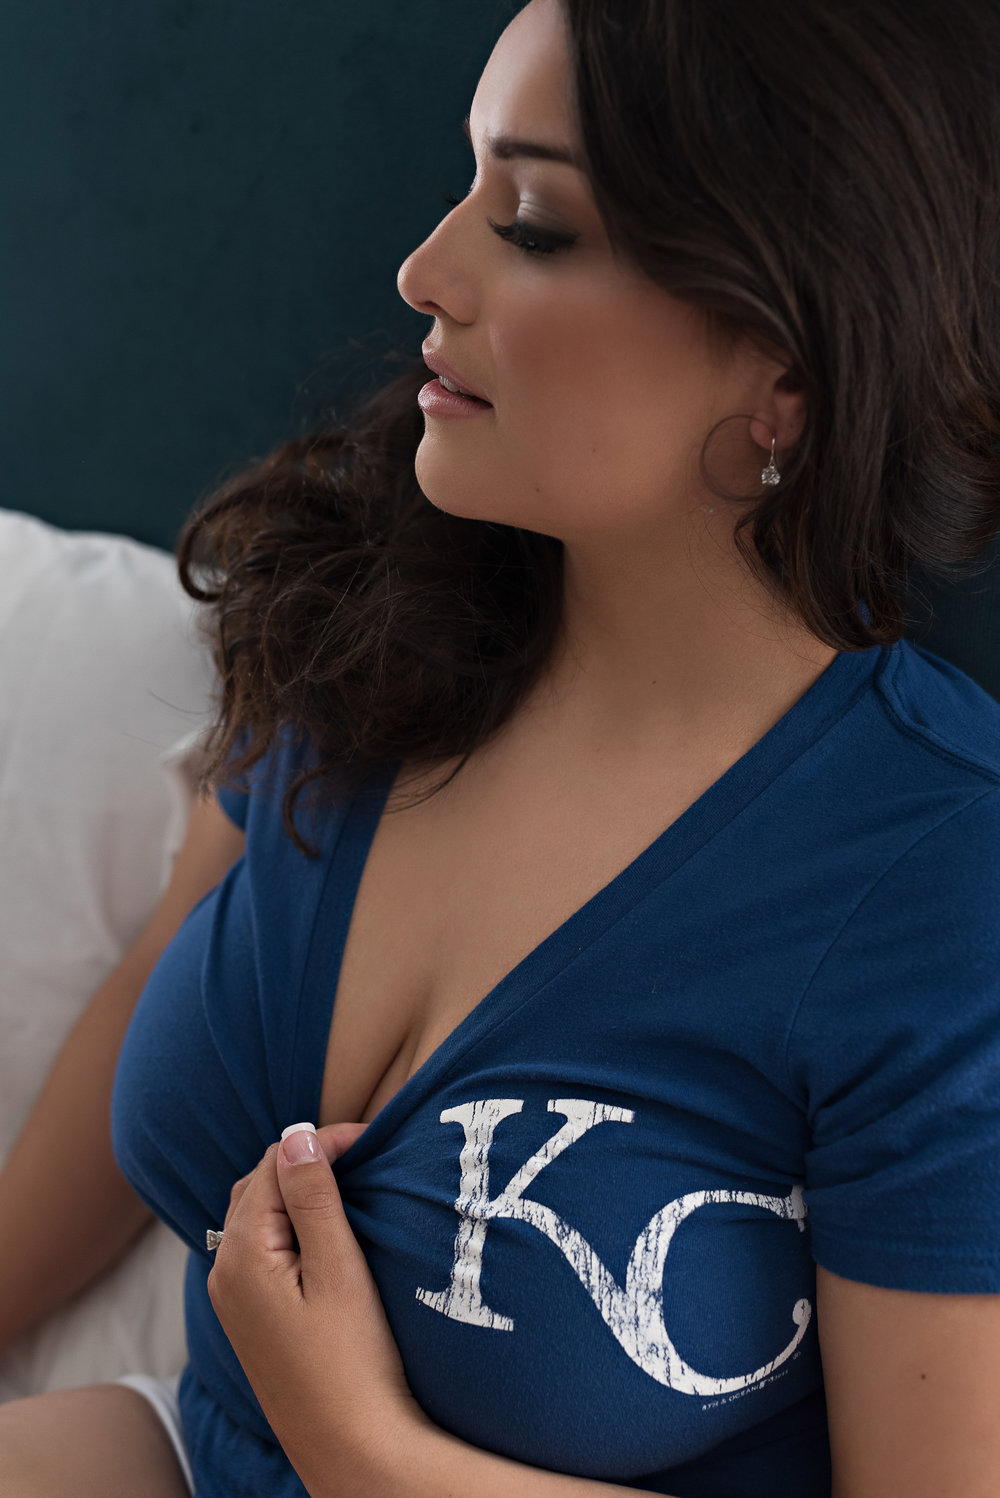 Denver boudoir photo of sultry brunette wearing blue KC shirt